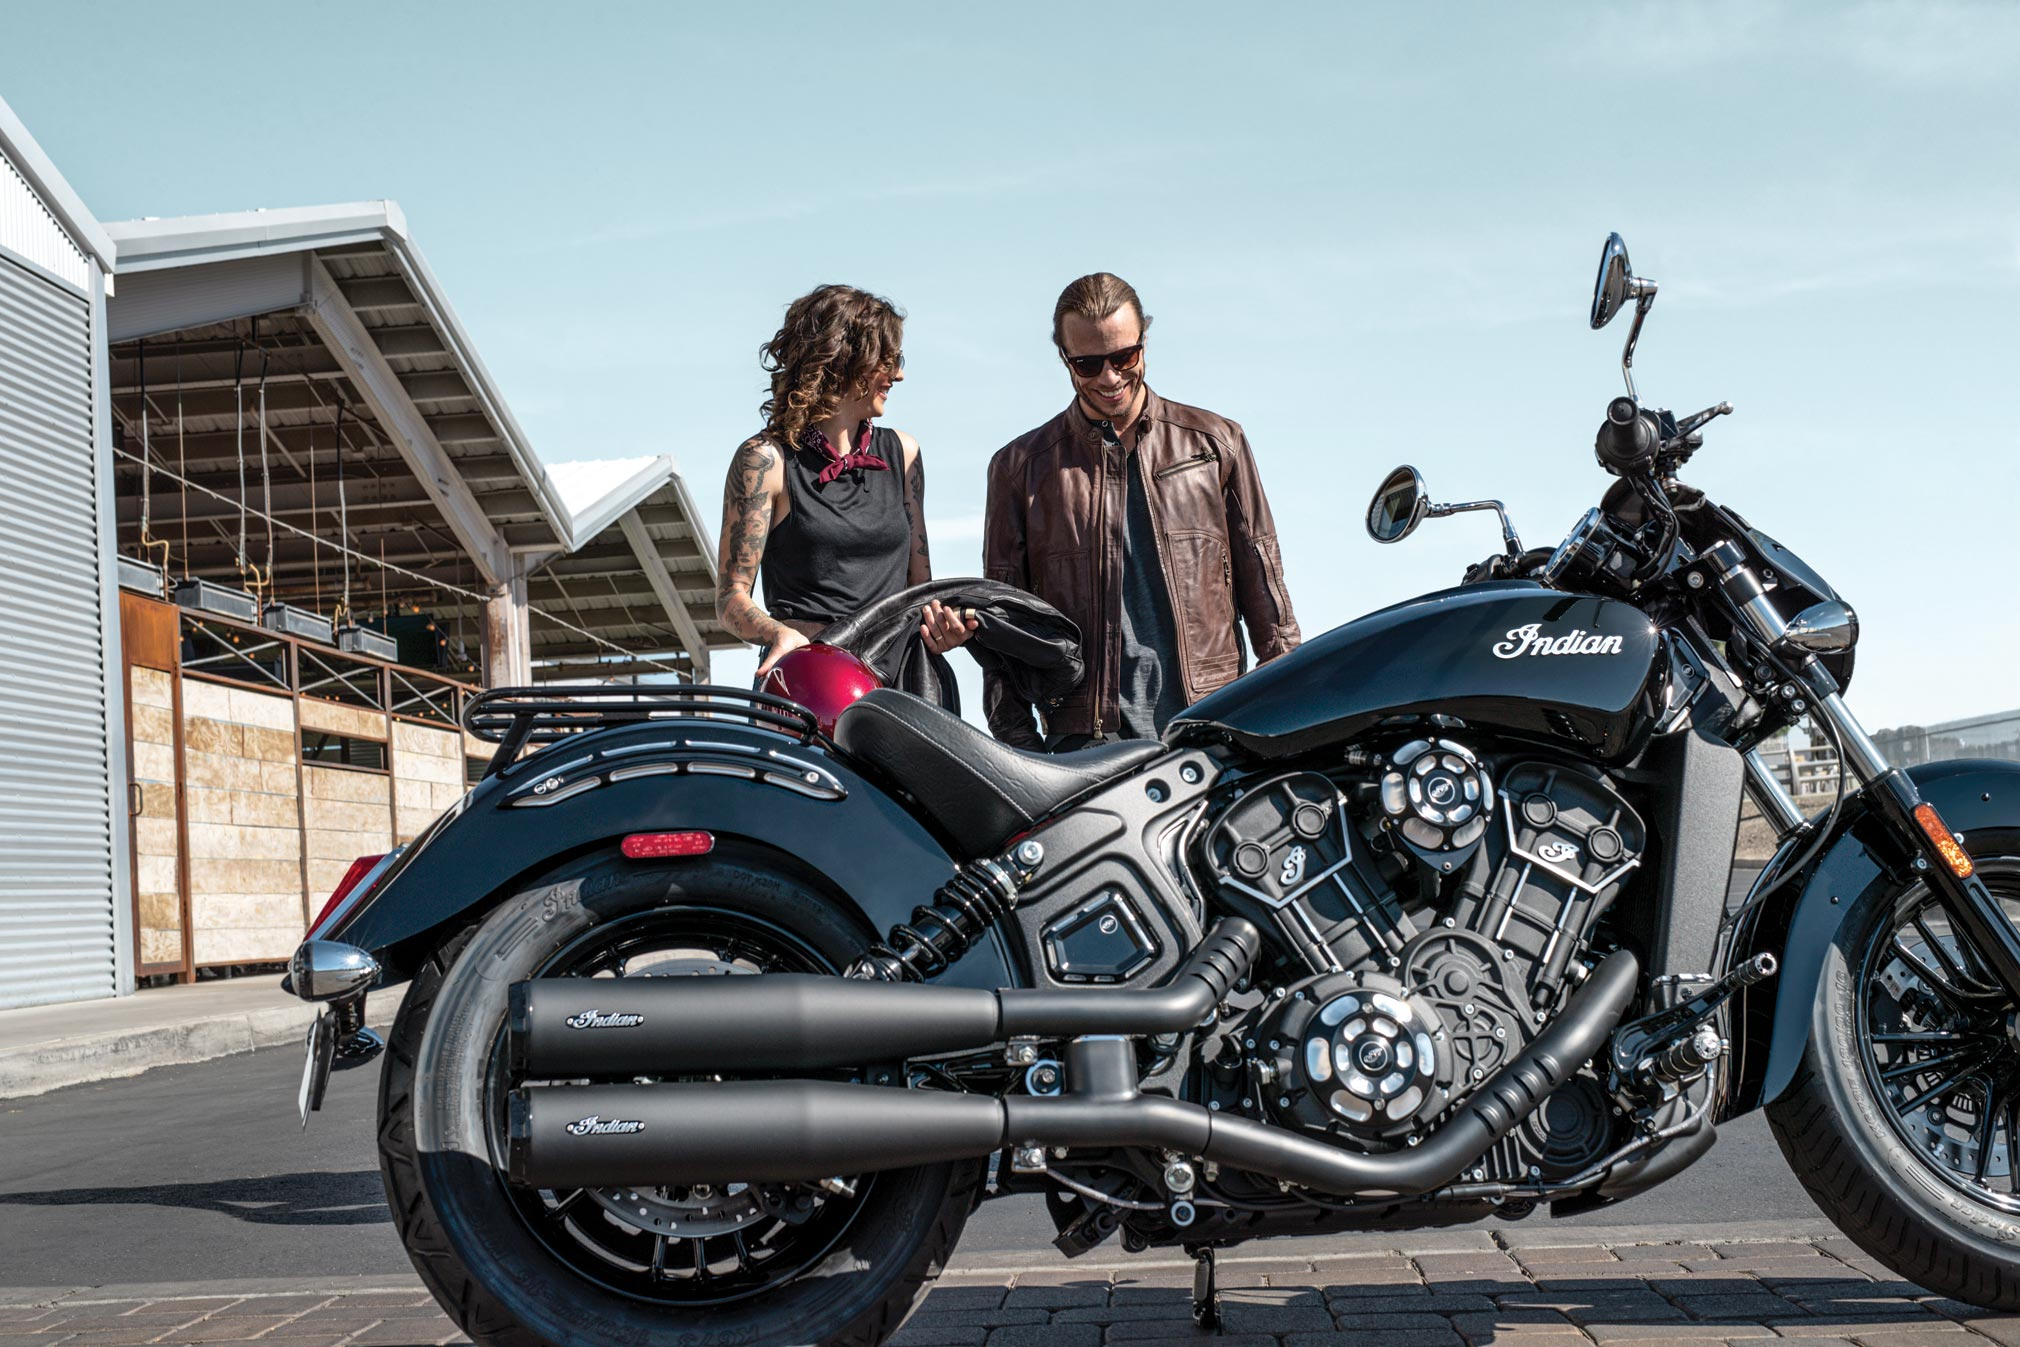 2020 Indian Scout Sixty Guide Total Motorcycle